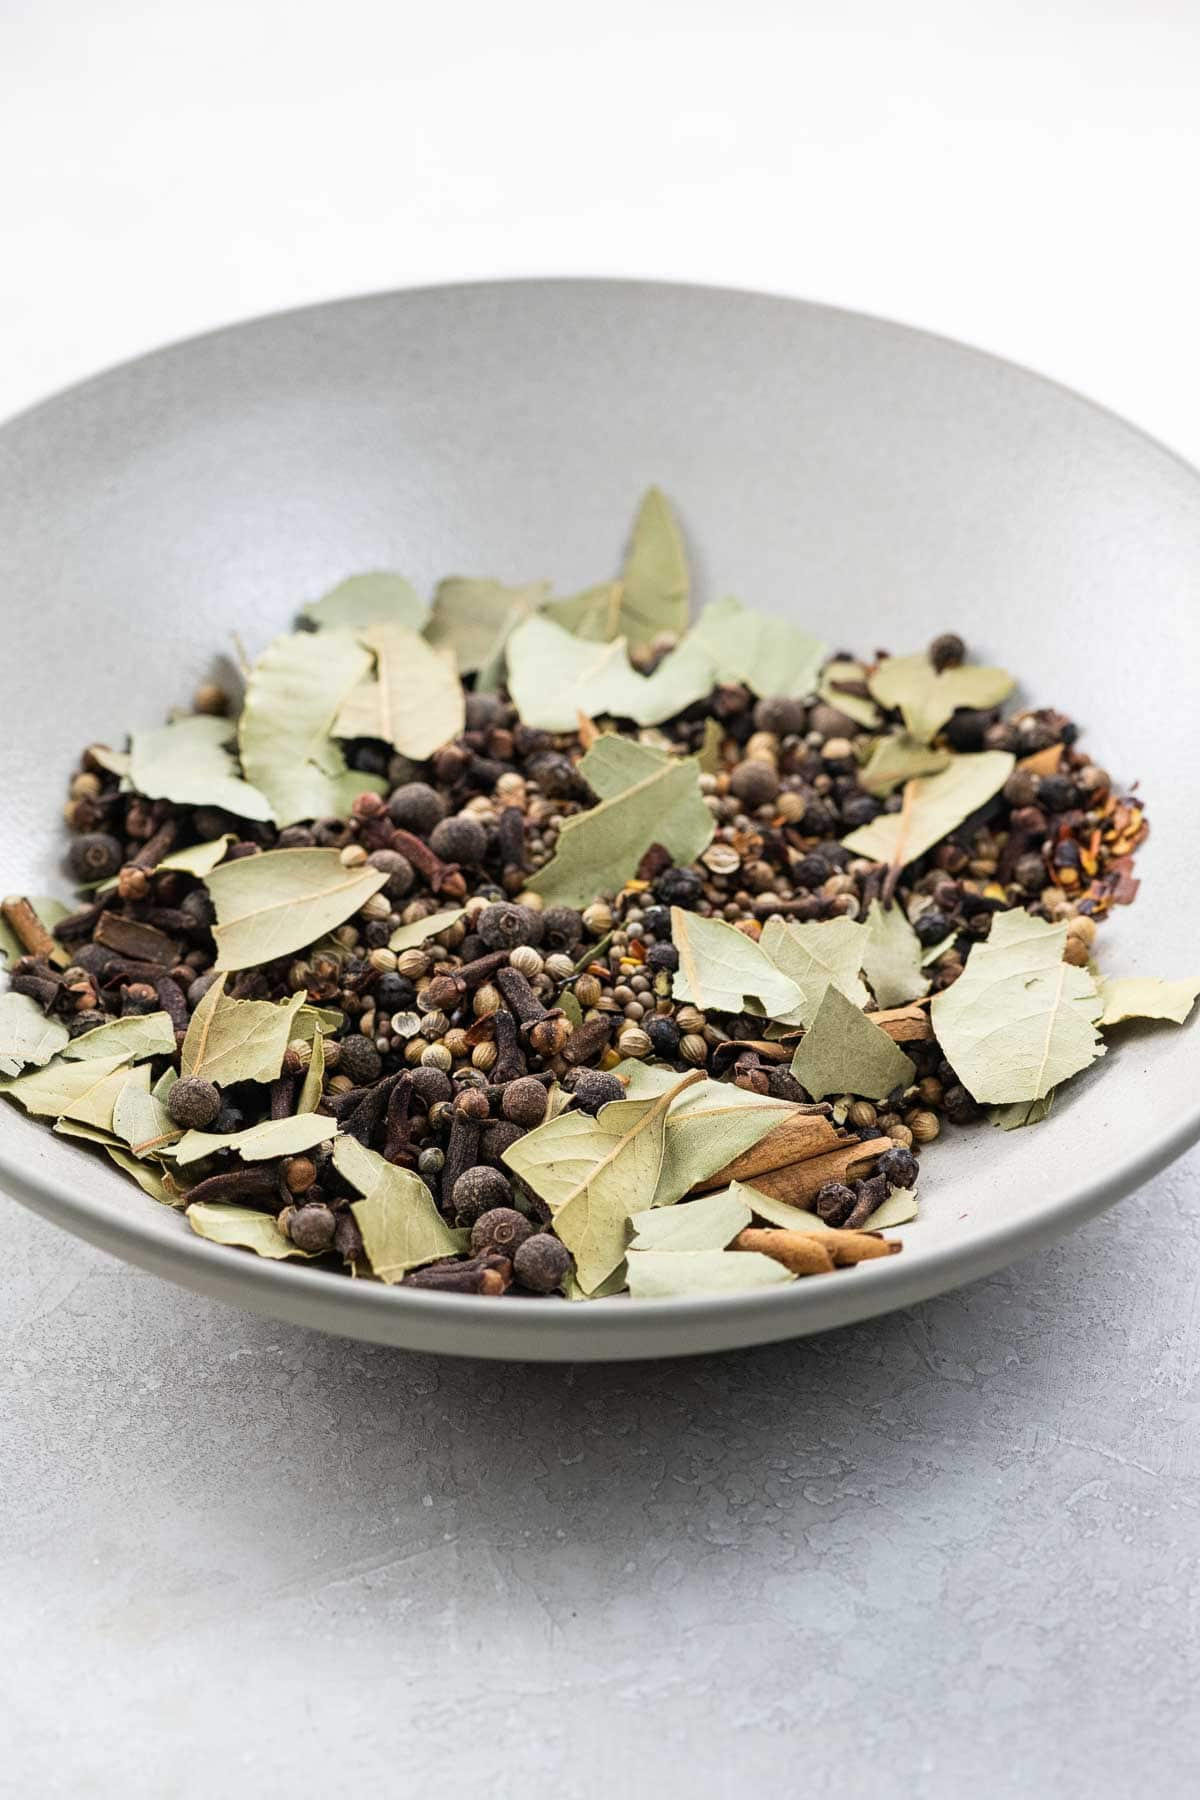 a bowl of pickling spice ingredients